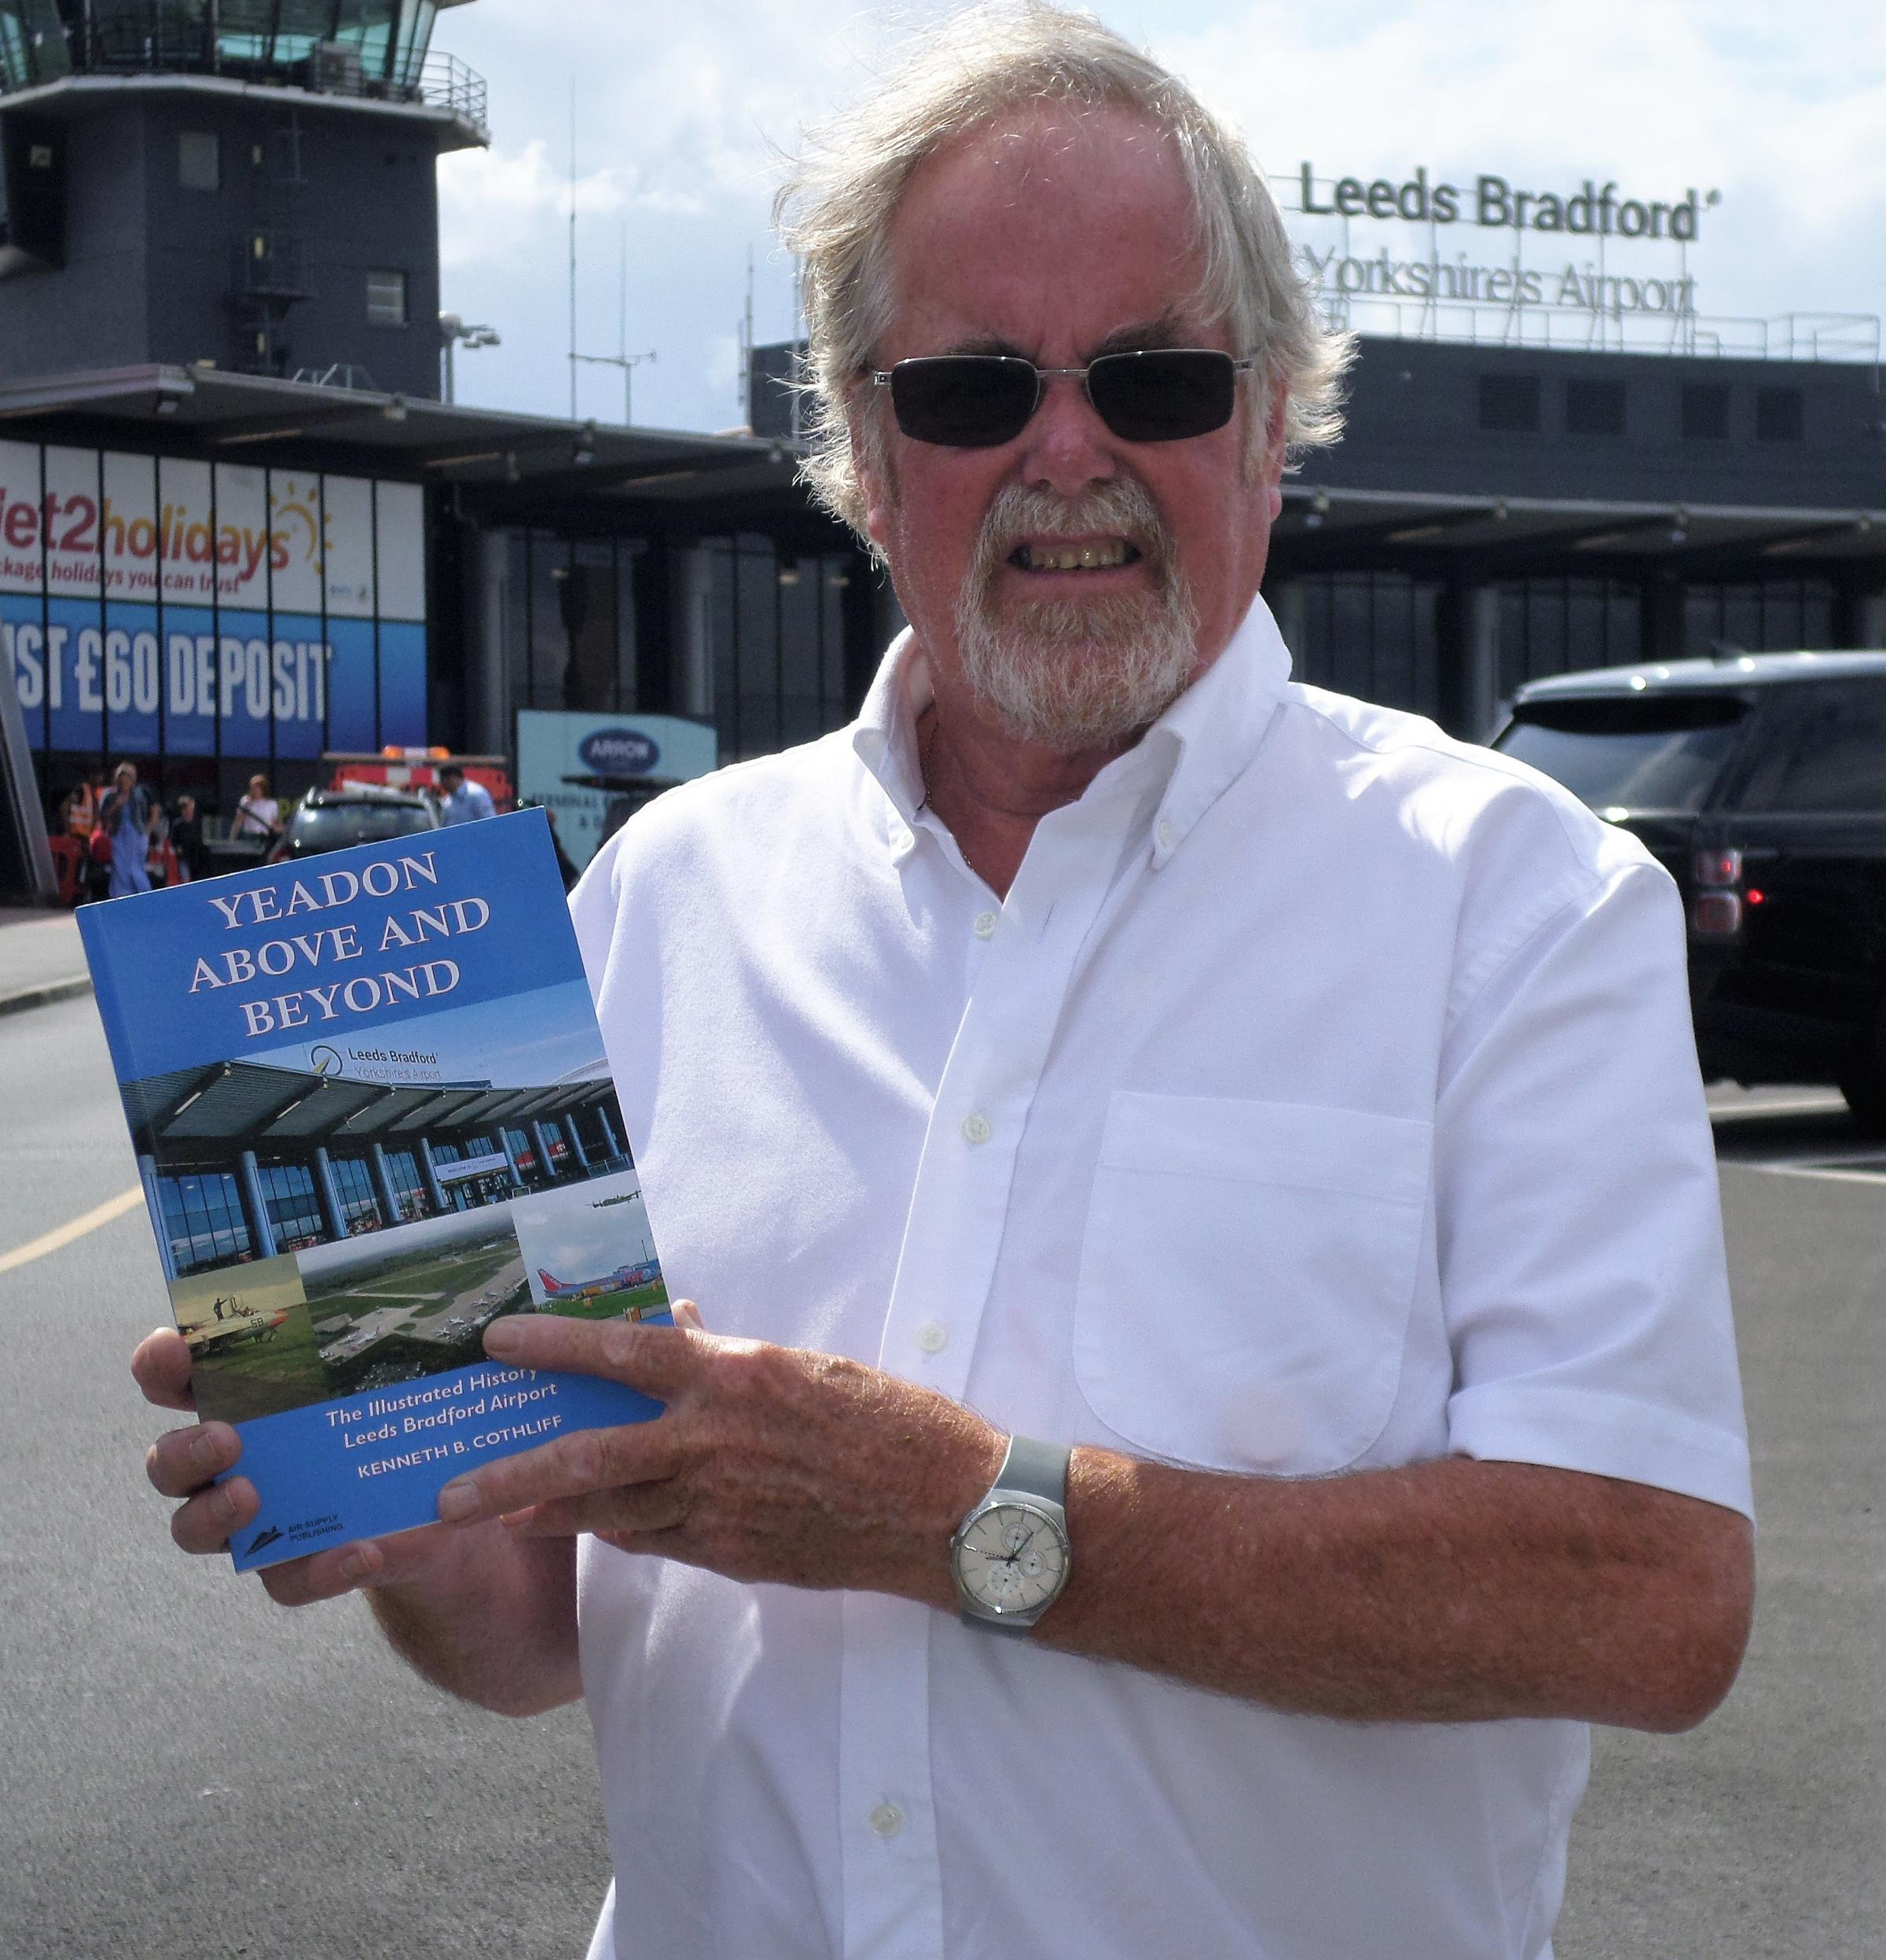 Local enthusiast charts the history of Leeds Bradford Airport in new book